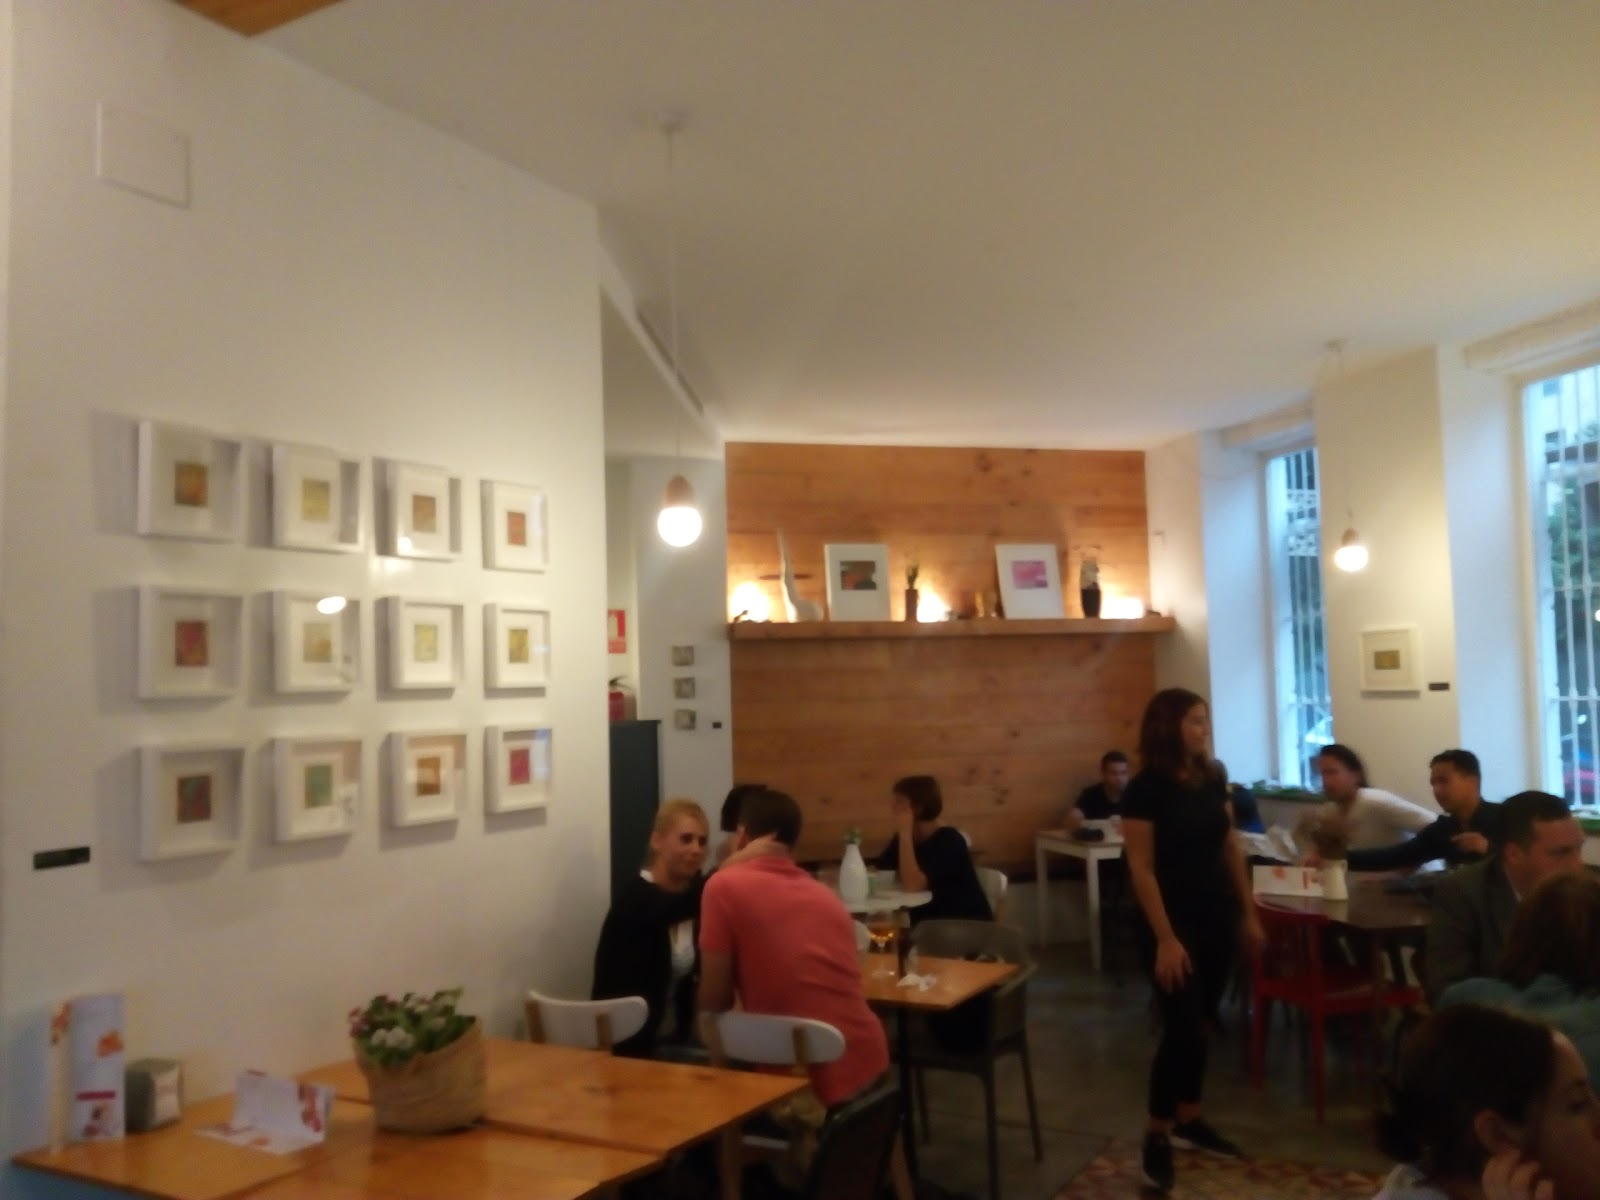 Trentatres Gallery Cafe: A Work-Friendly Place in Valencia